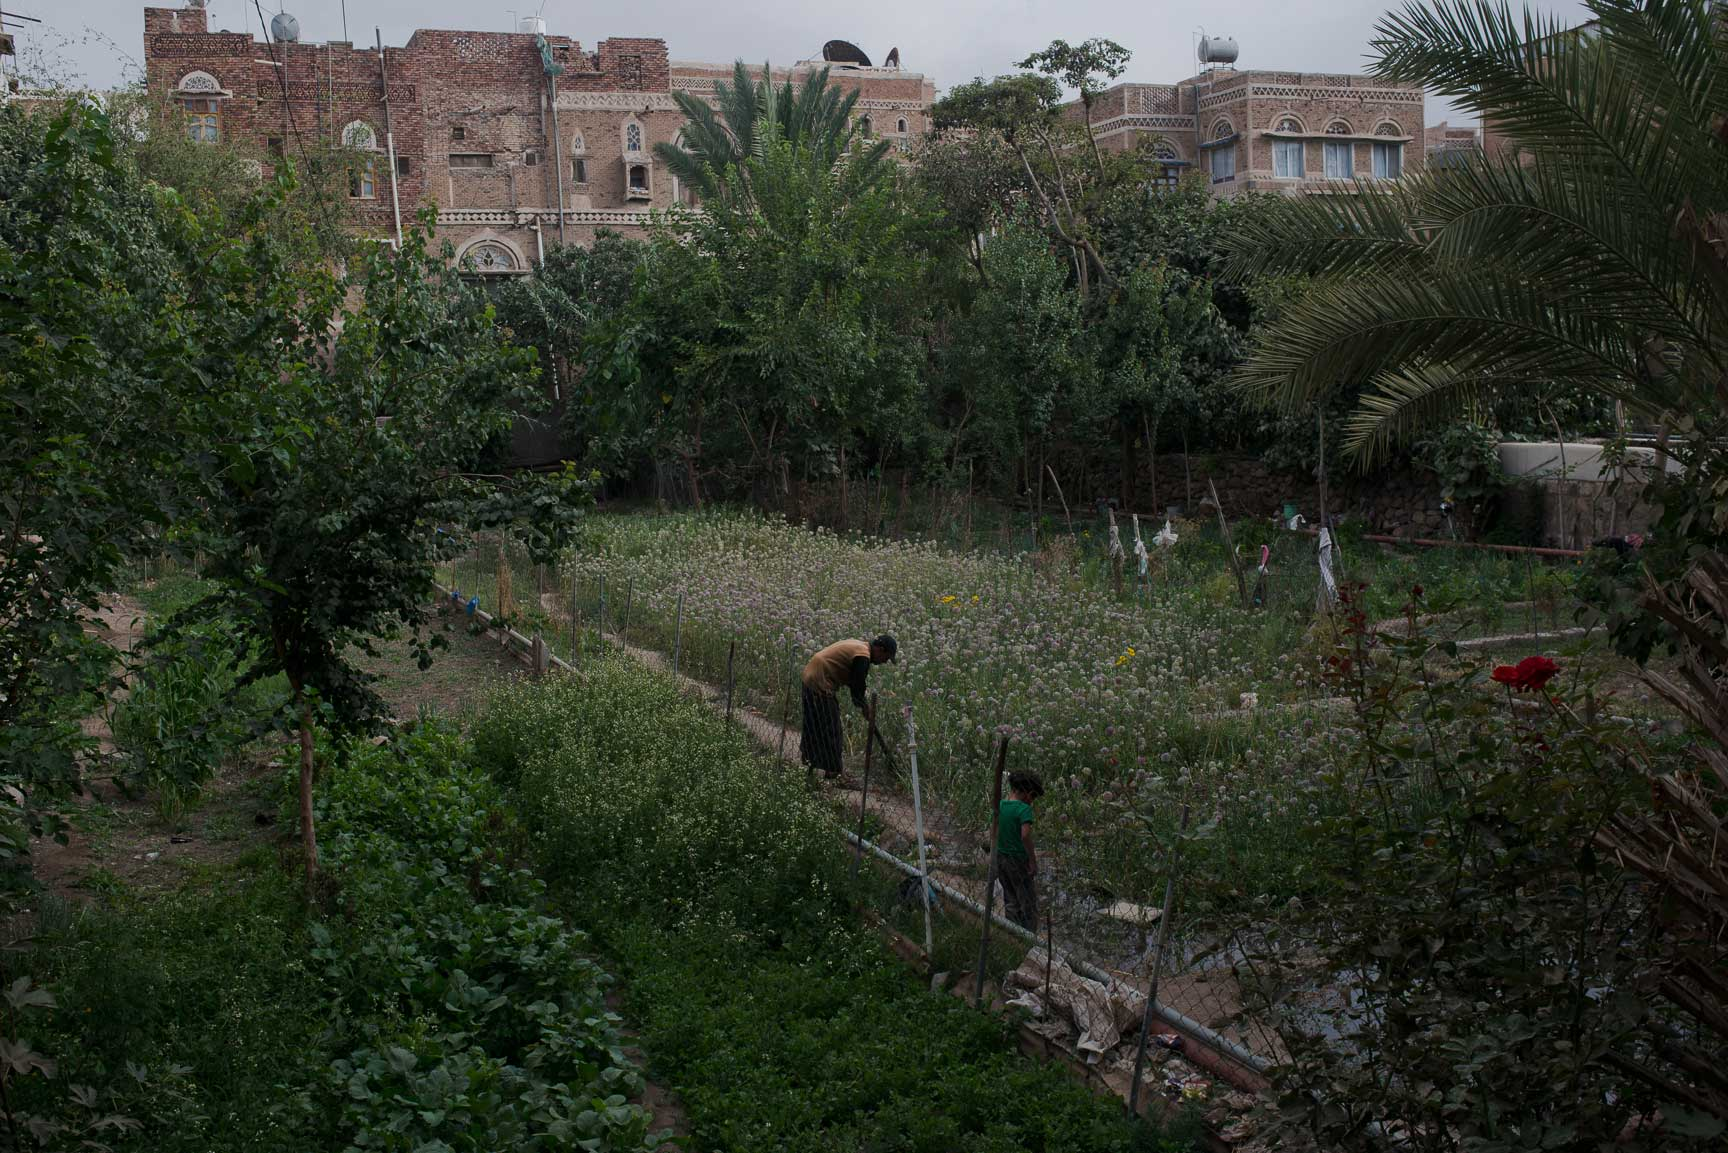 A Yemeni man tends to his vegetable garden on July 4, 2015 in Sana'a, Yemen. Old Sana'a used to be full of green gardens; most have now dried out due to water shortages.